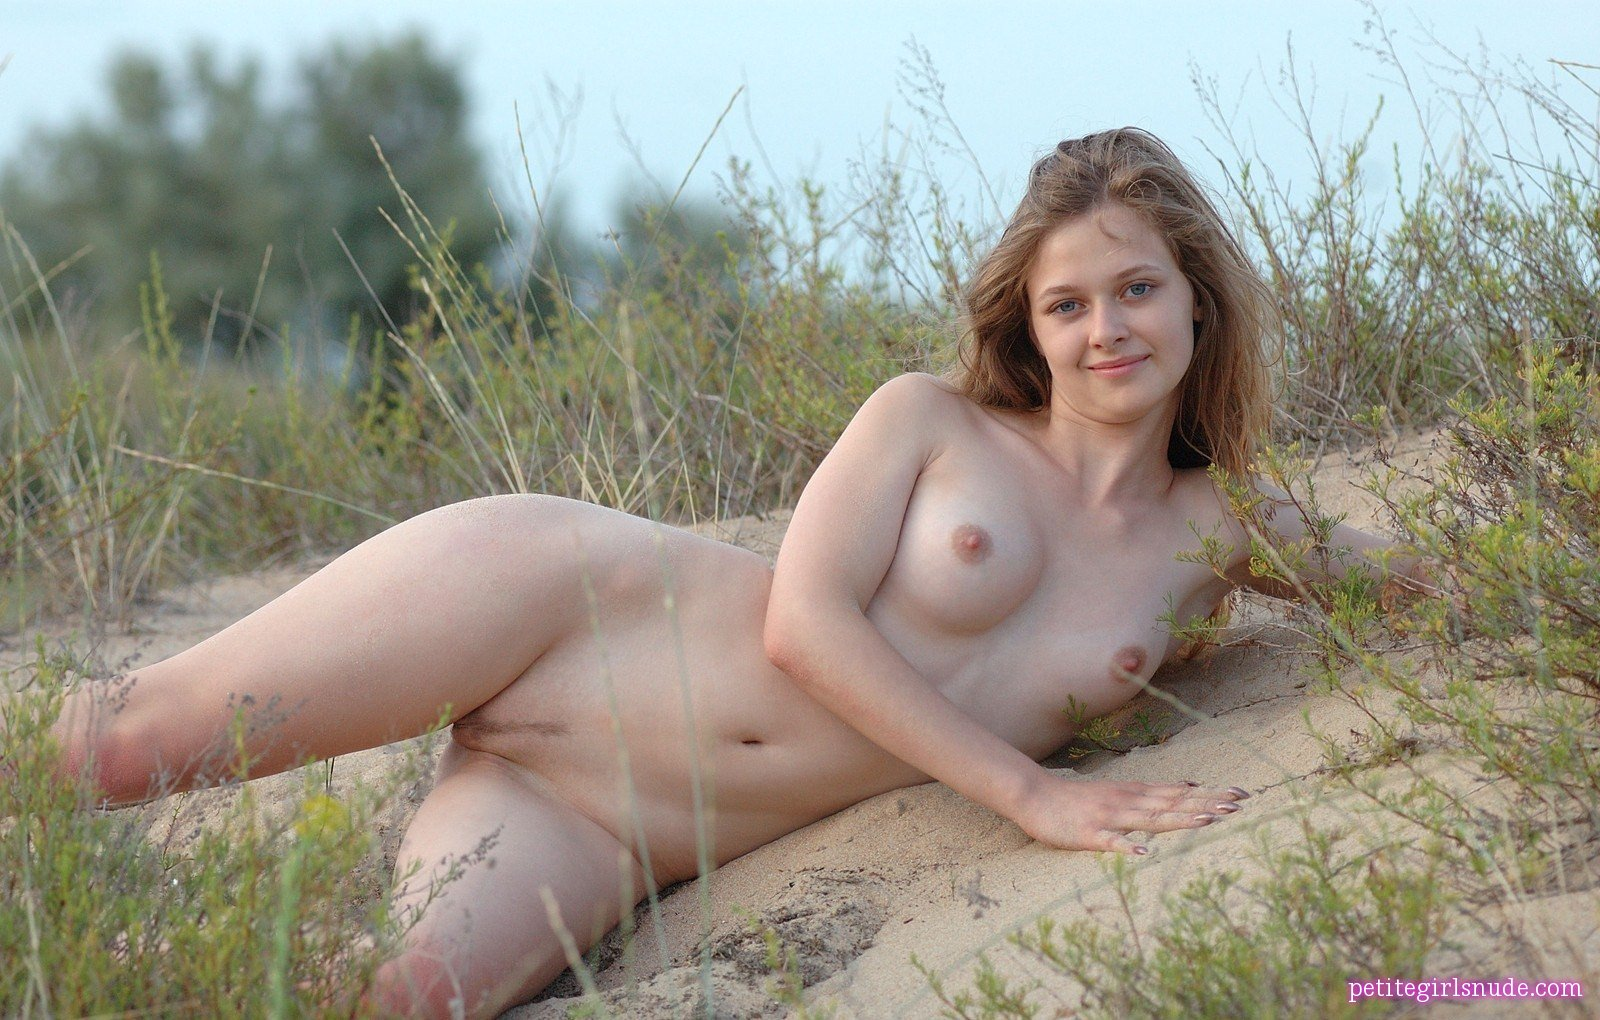 Pretty Juli Nude Pics And Biography - Petite Girls Nude-5636